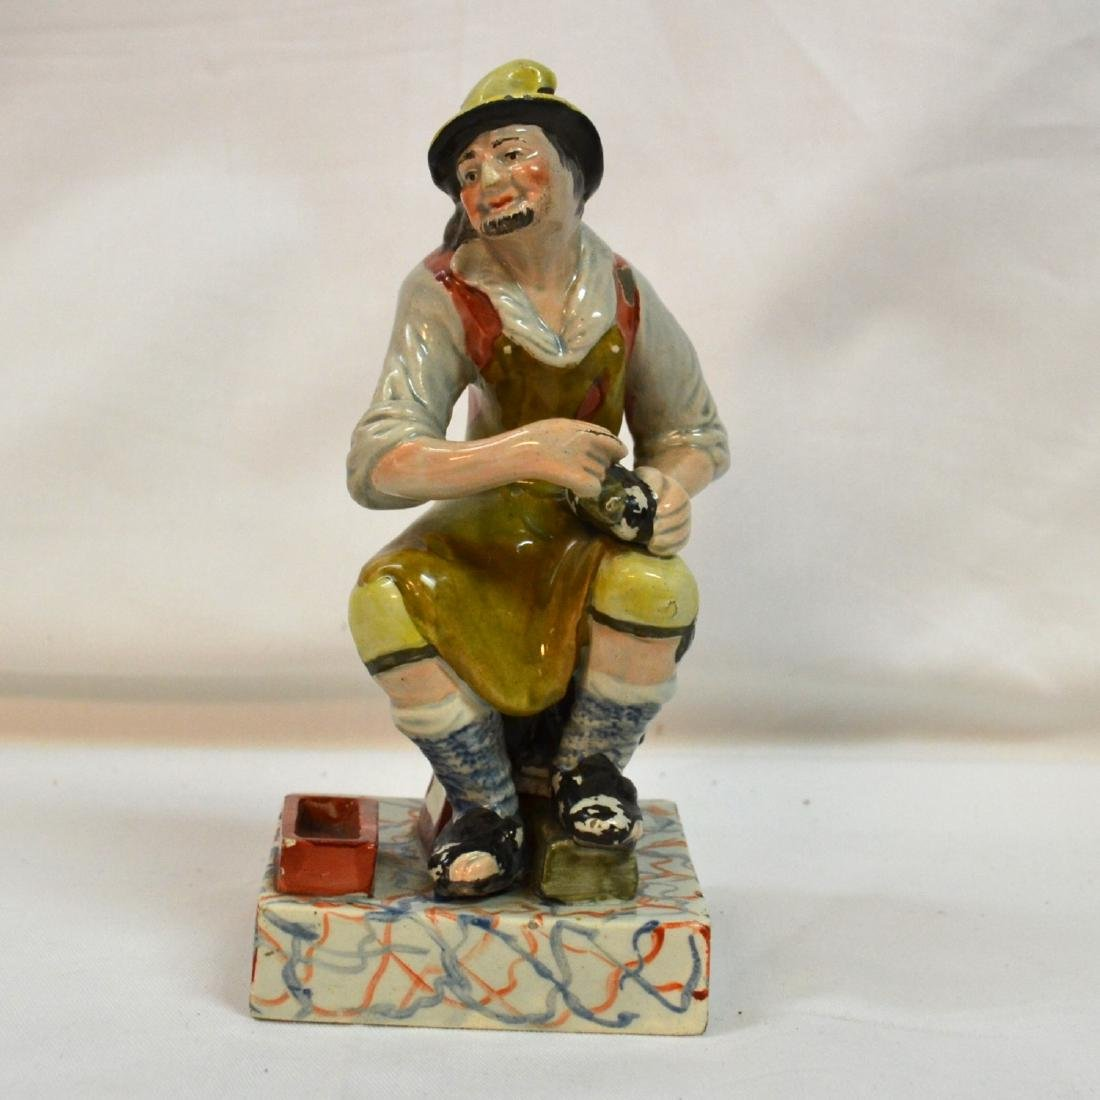 Vintage  Staffordshire Pottery Figure  Shoemaker